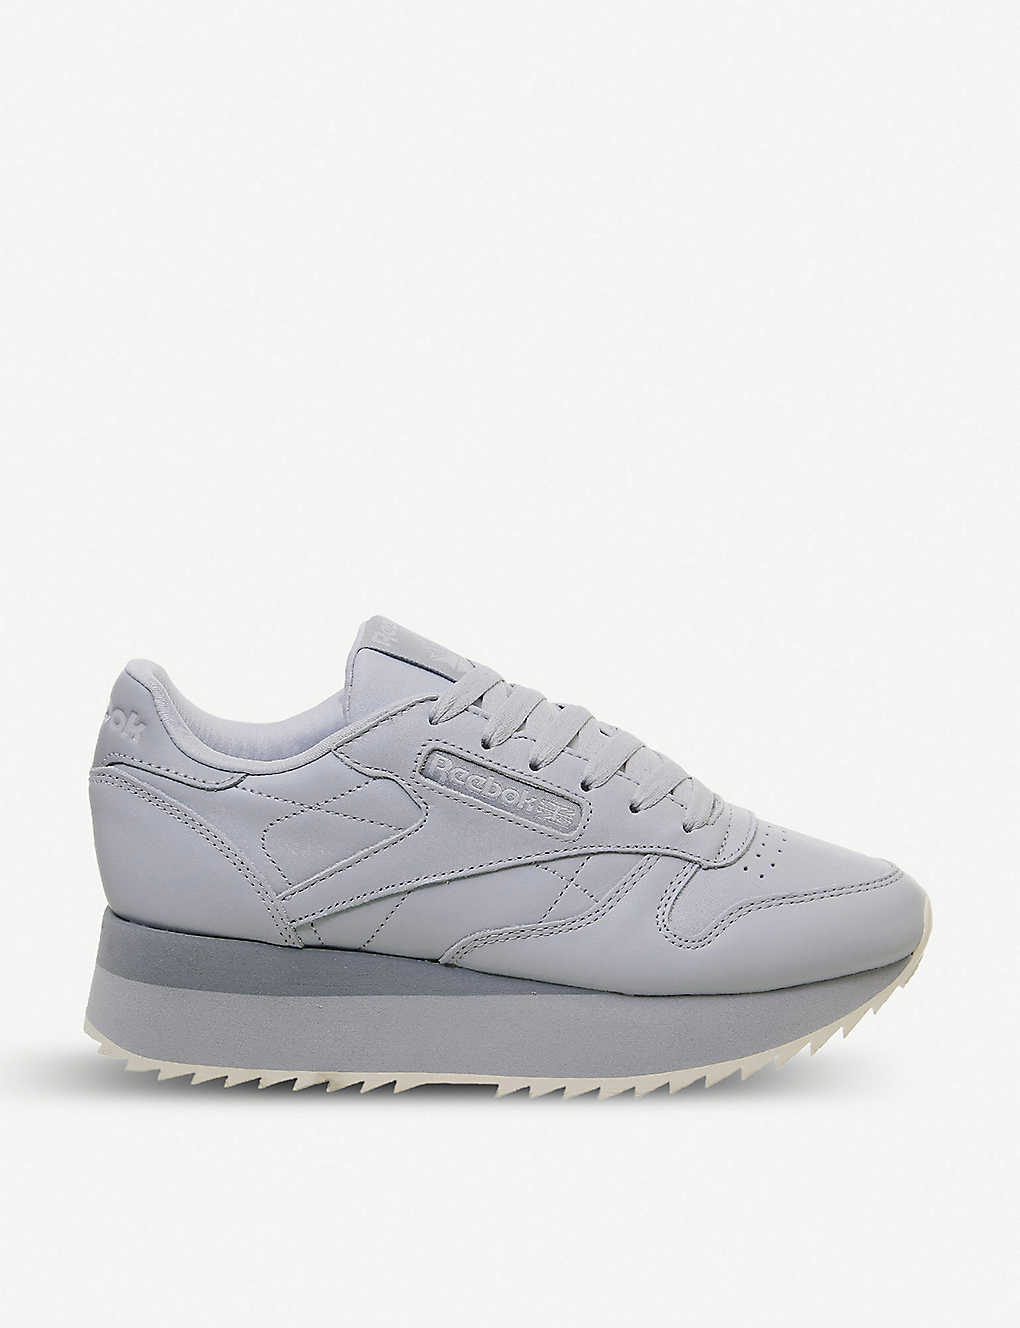 94a33c4d35e REEBOK - Classic Leather Double platform leather trainers ...